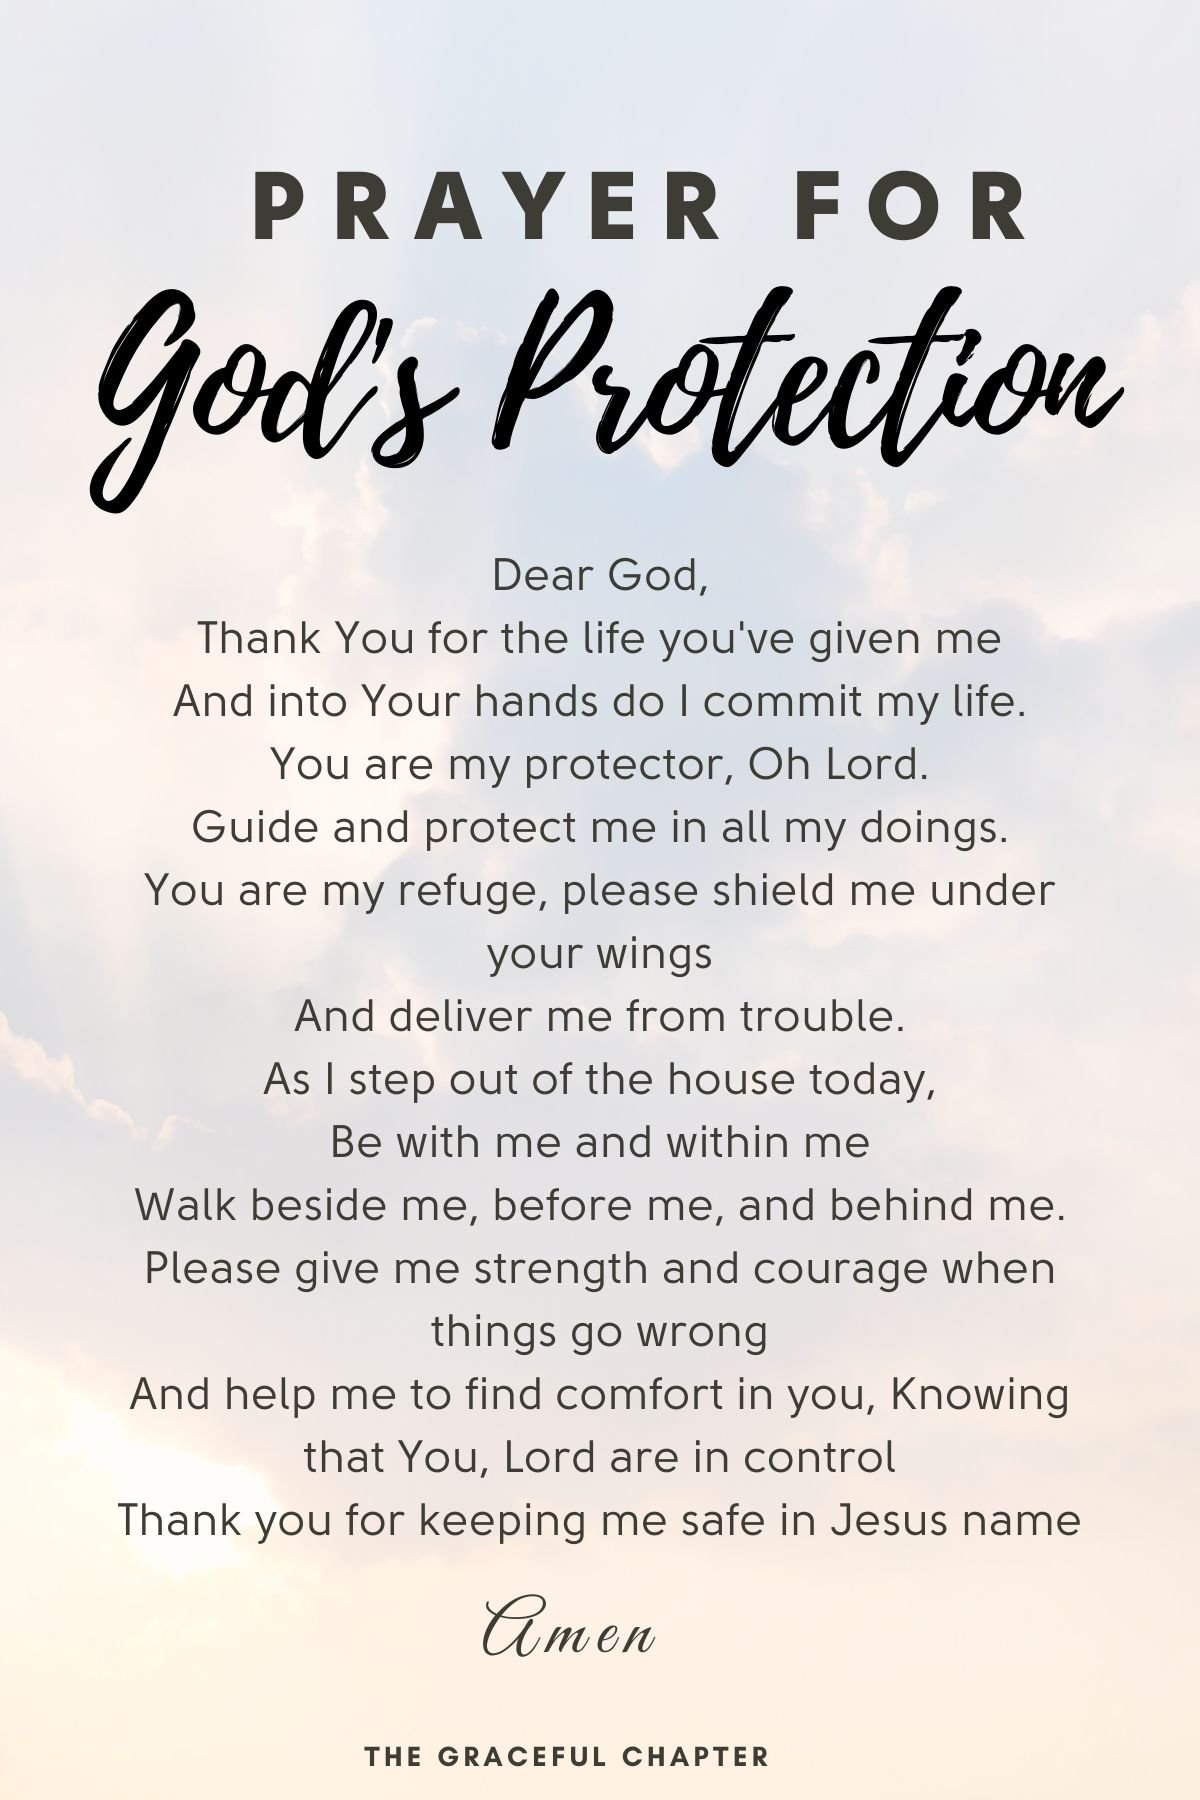 Prayer for God's protection